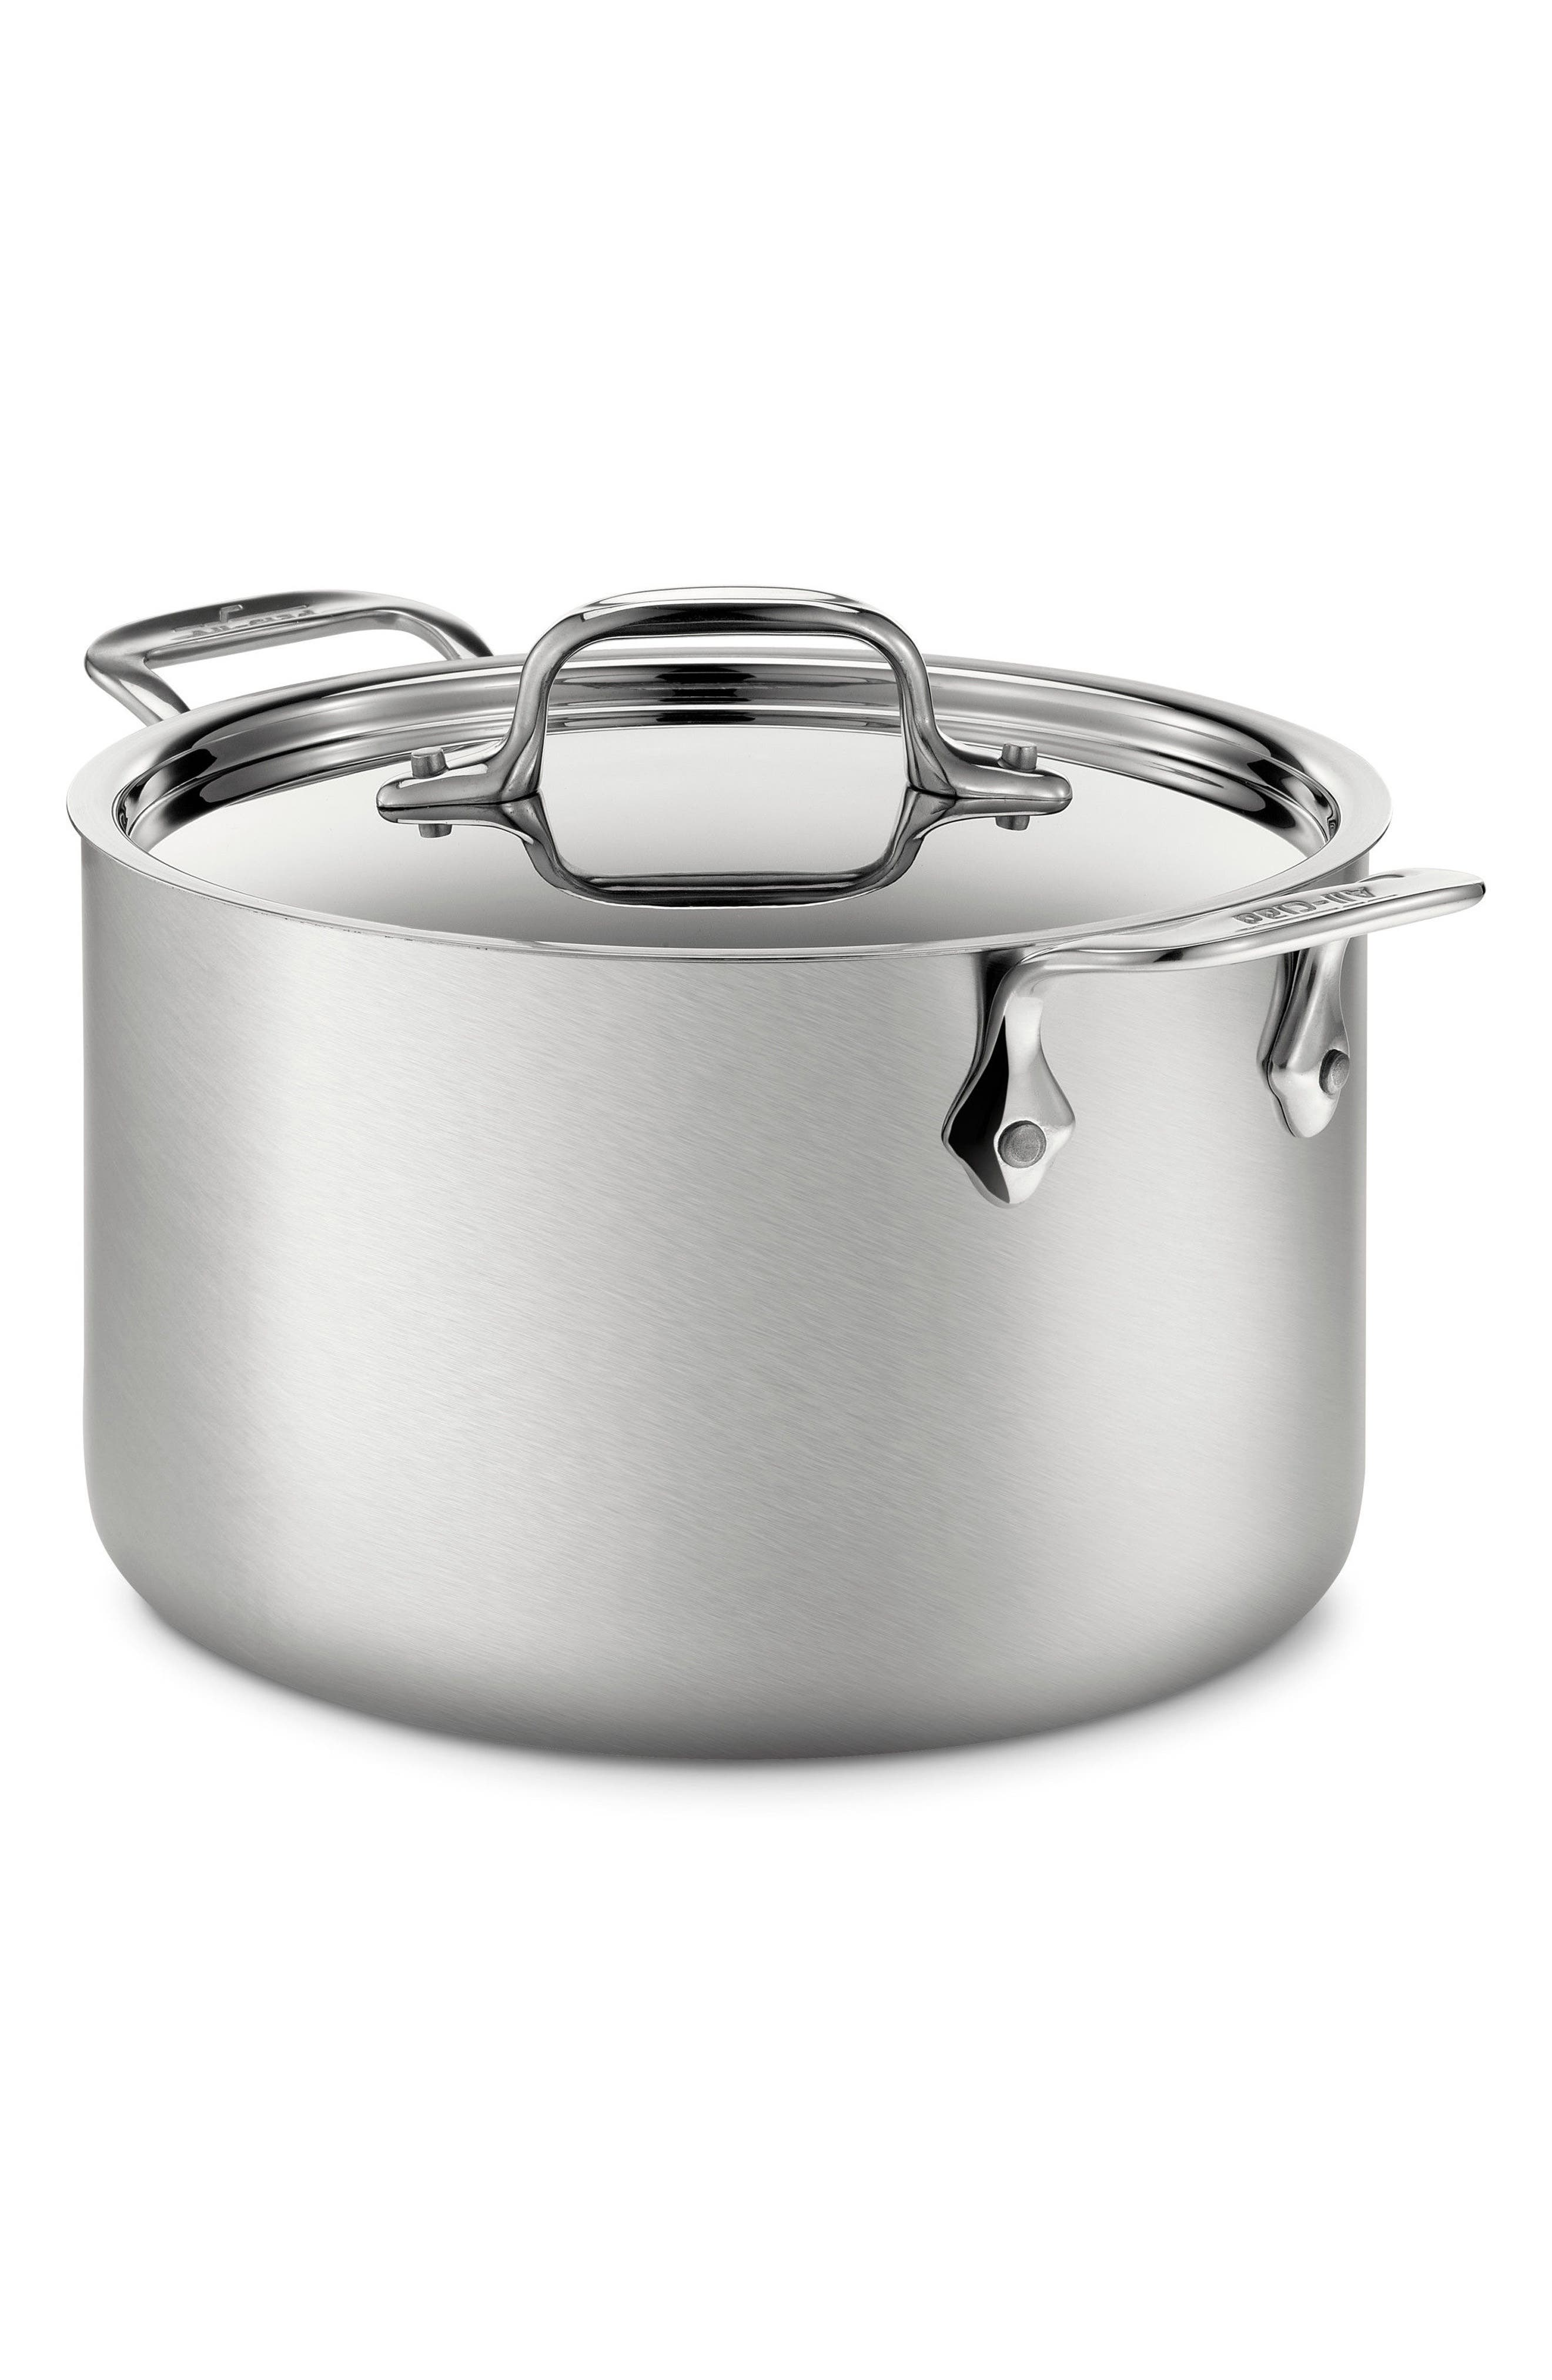 4-Quart Stainless Steel Soup Pot,                         Main,                         color, Stainless